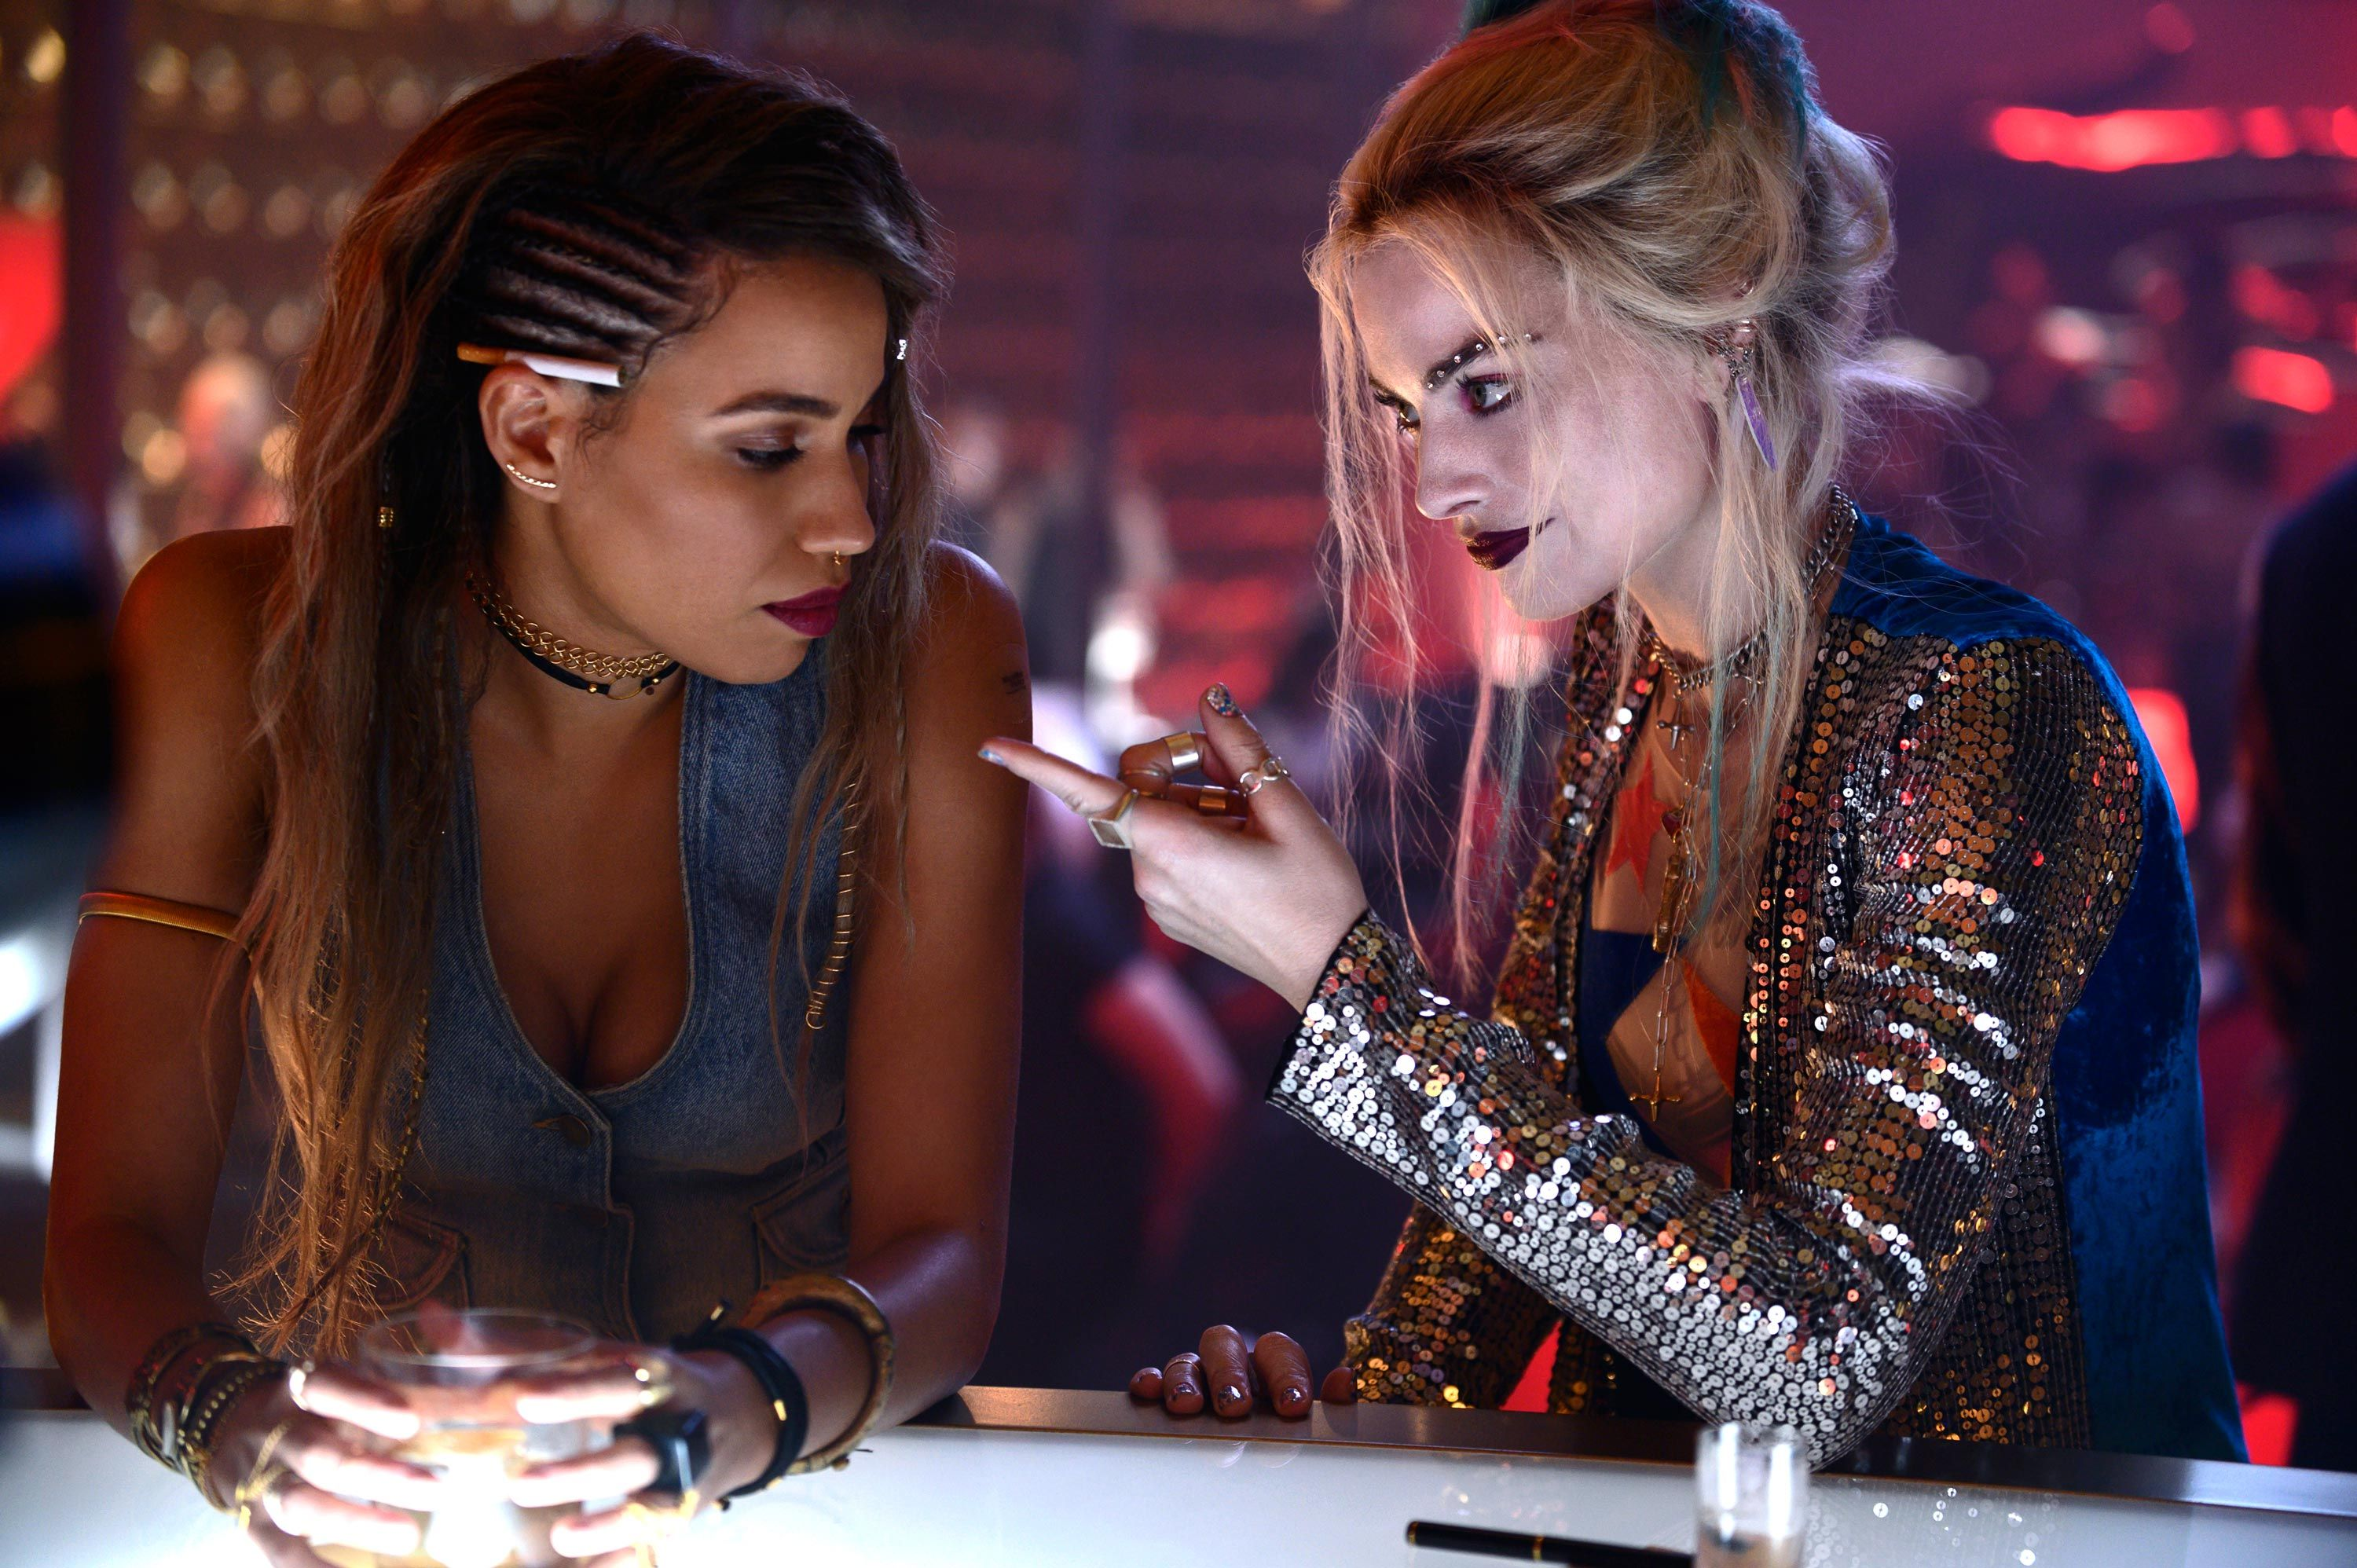 Birds Of Prey Cast Explain How That Hair Tie Moment Came About